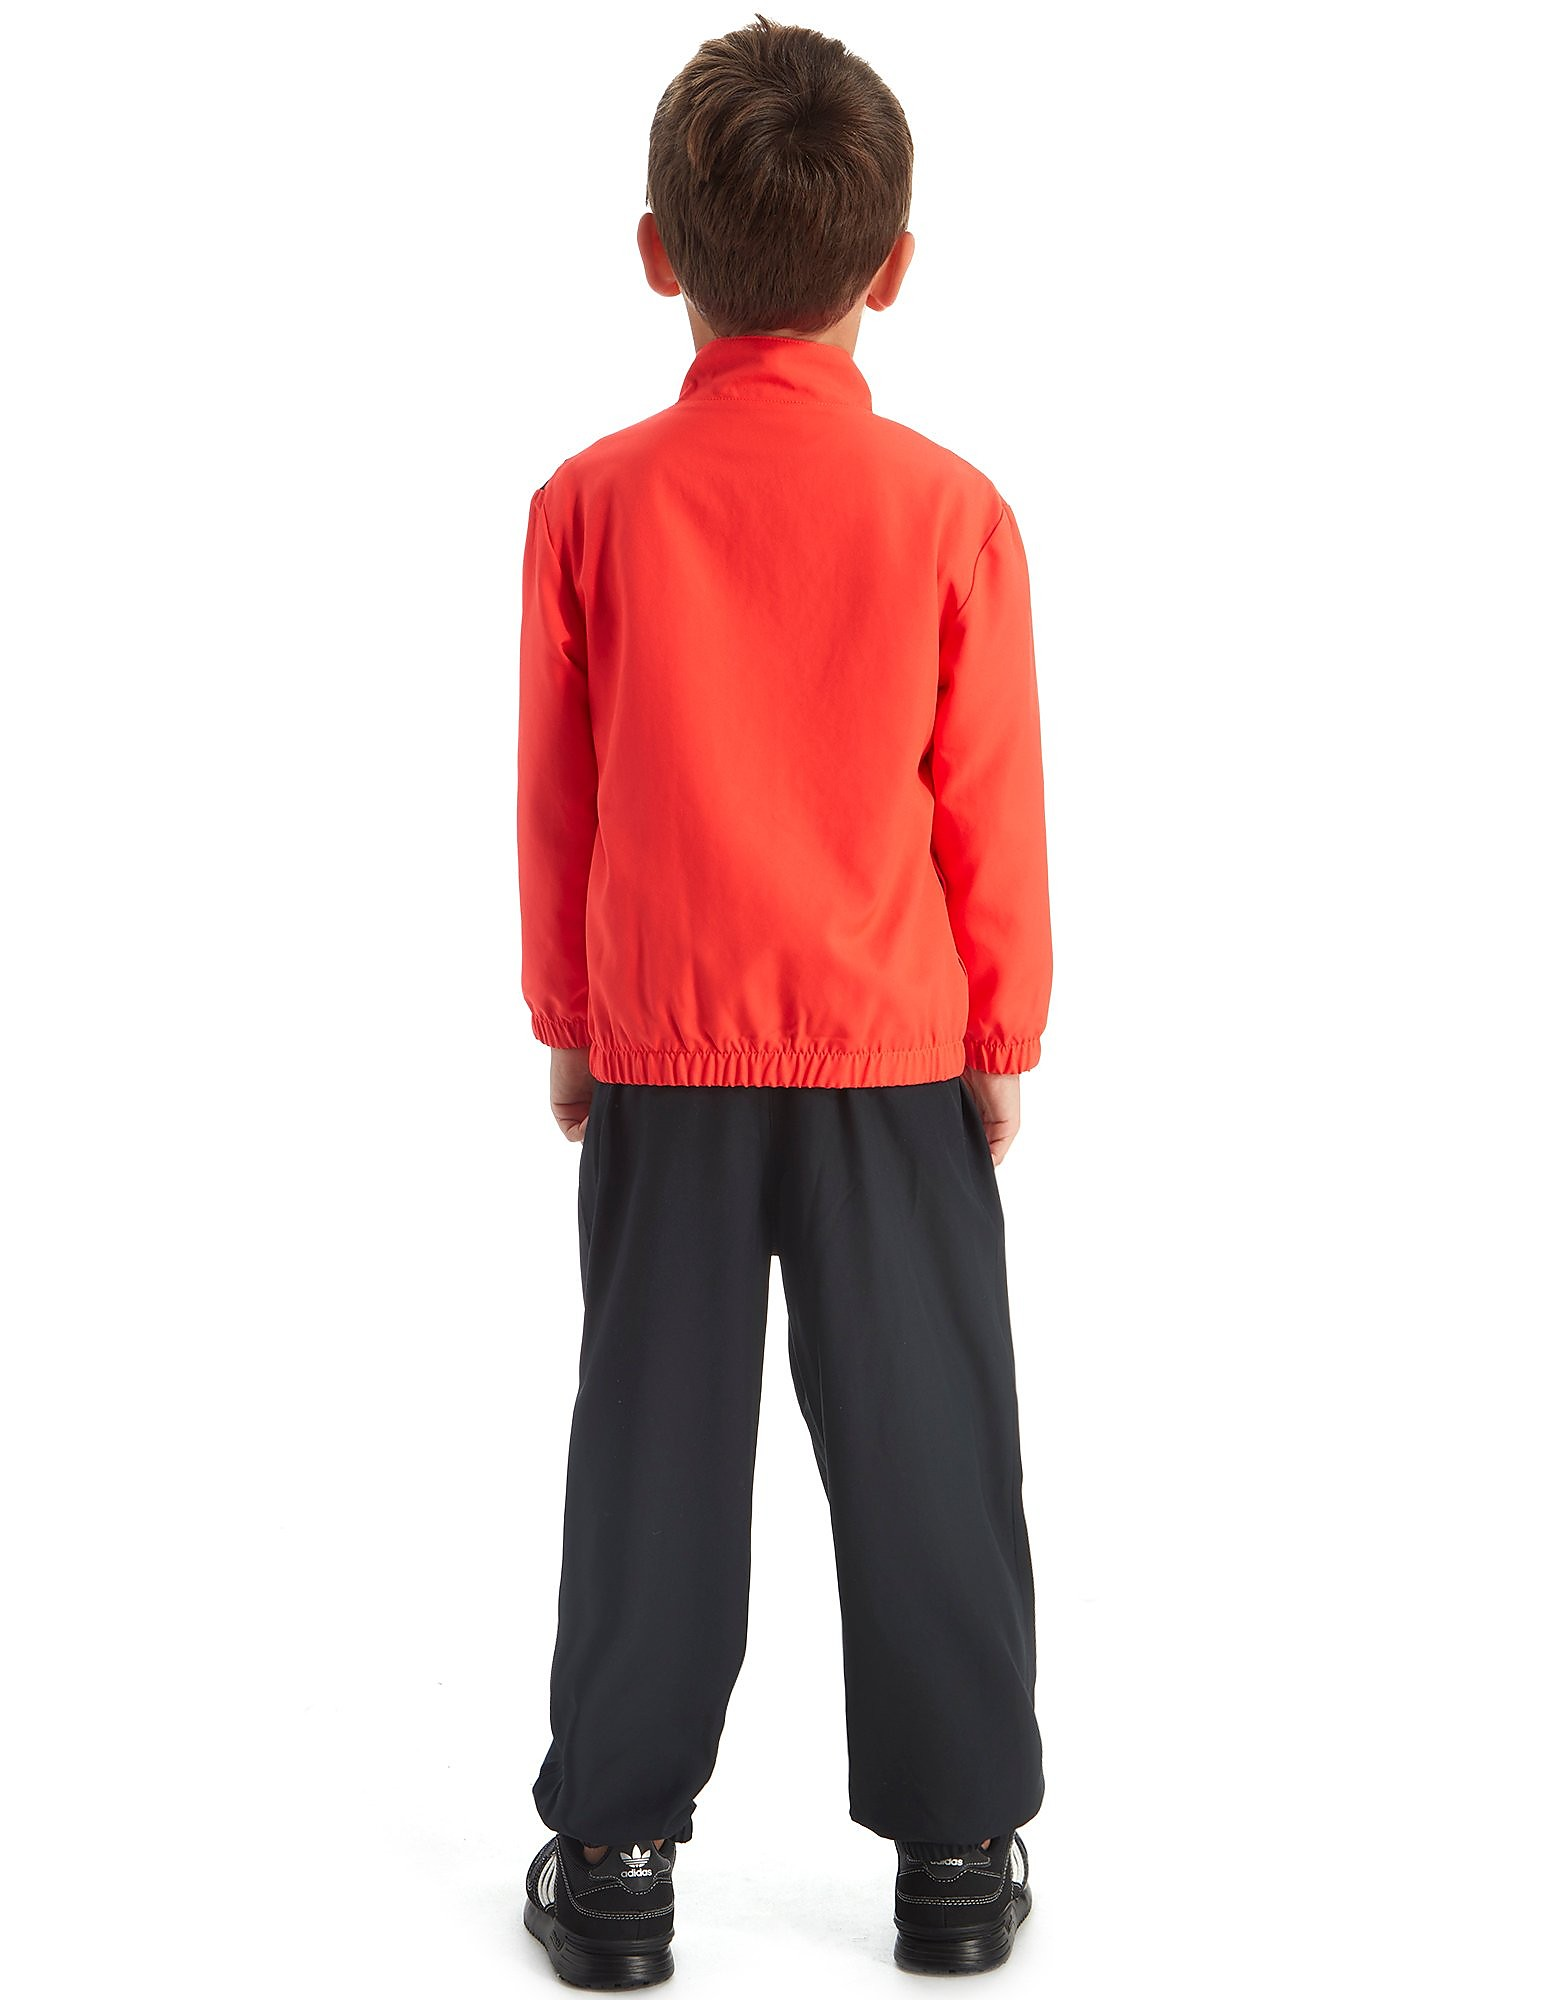 New Balance Liverpool FC Suit Children